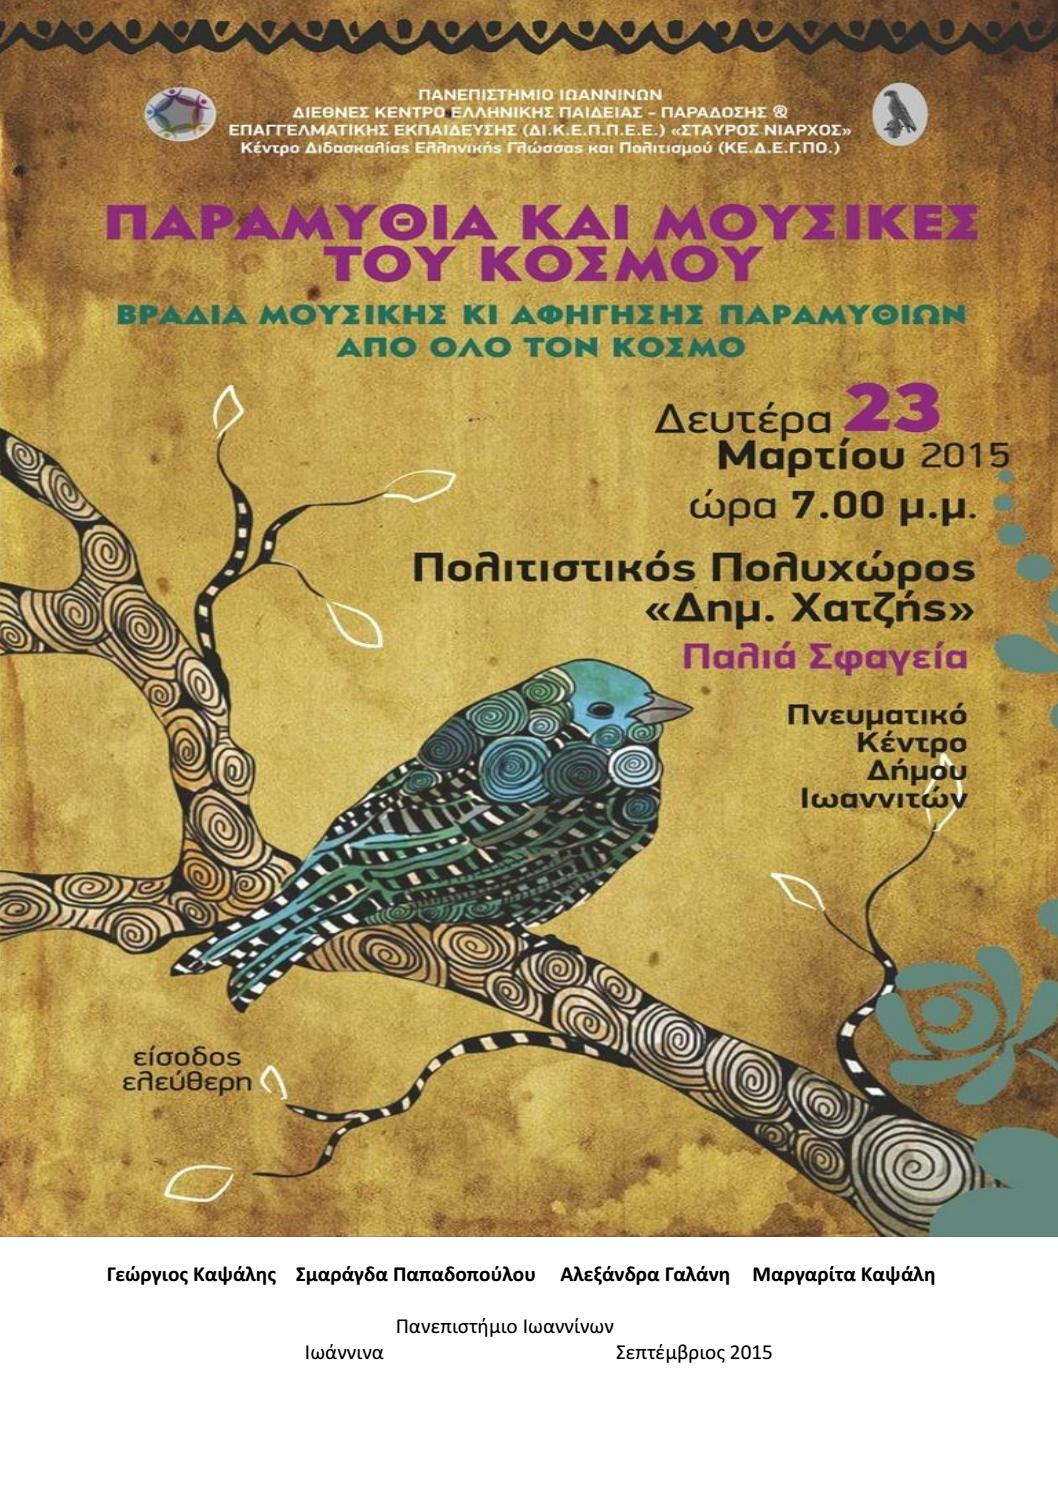 bd85fdbdaa4 Παραμύθια και μουσικές του κόσμου by Center for the Study of the Hellenic  Language and Culture - University of Ioannina - issuu